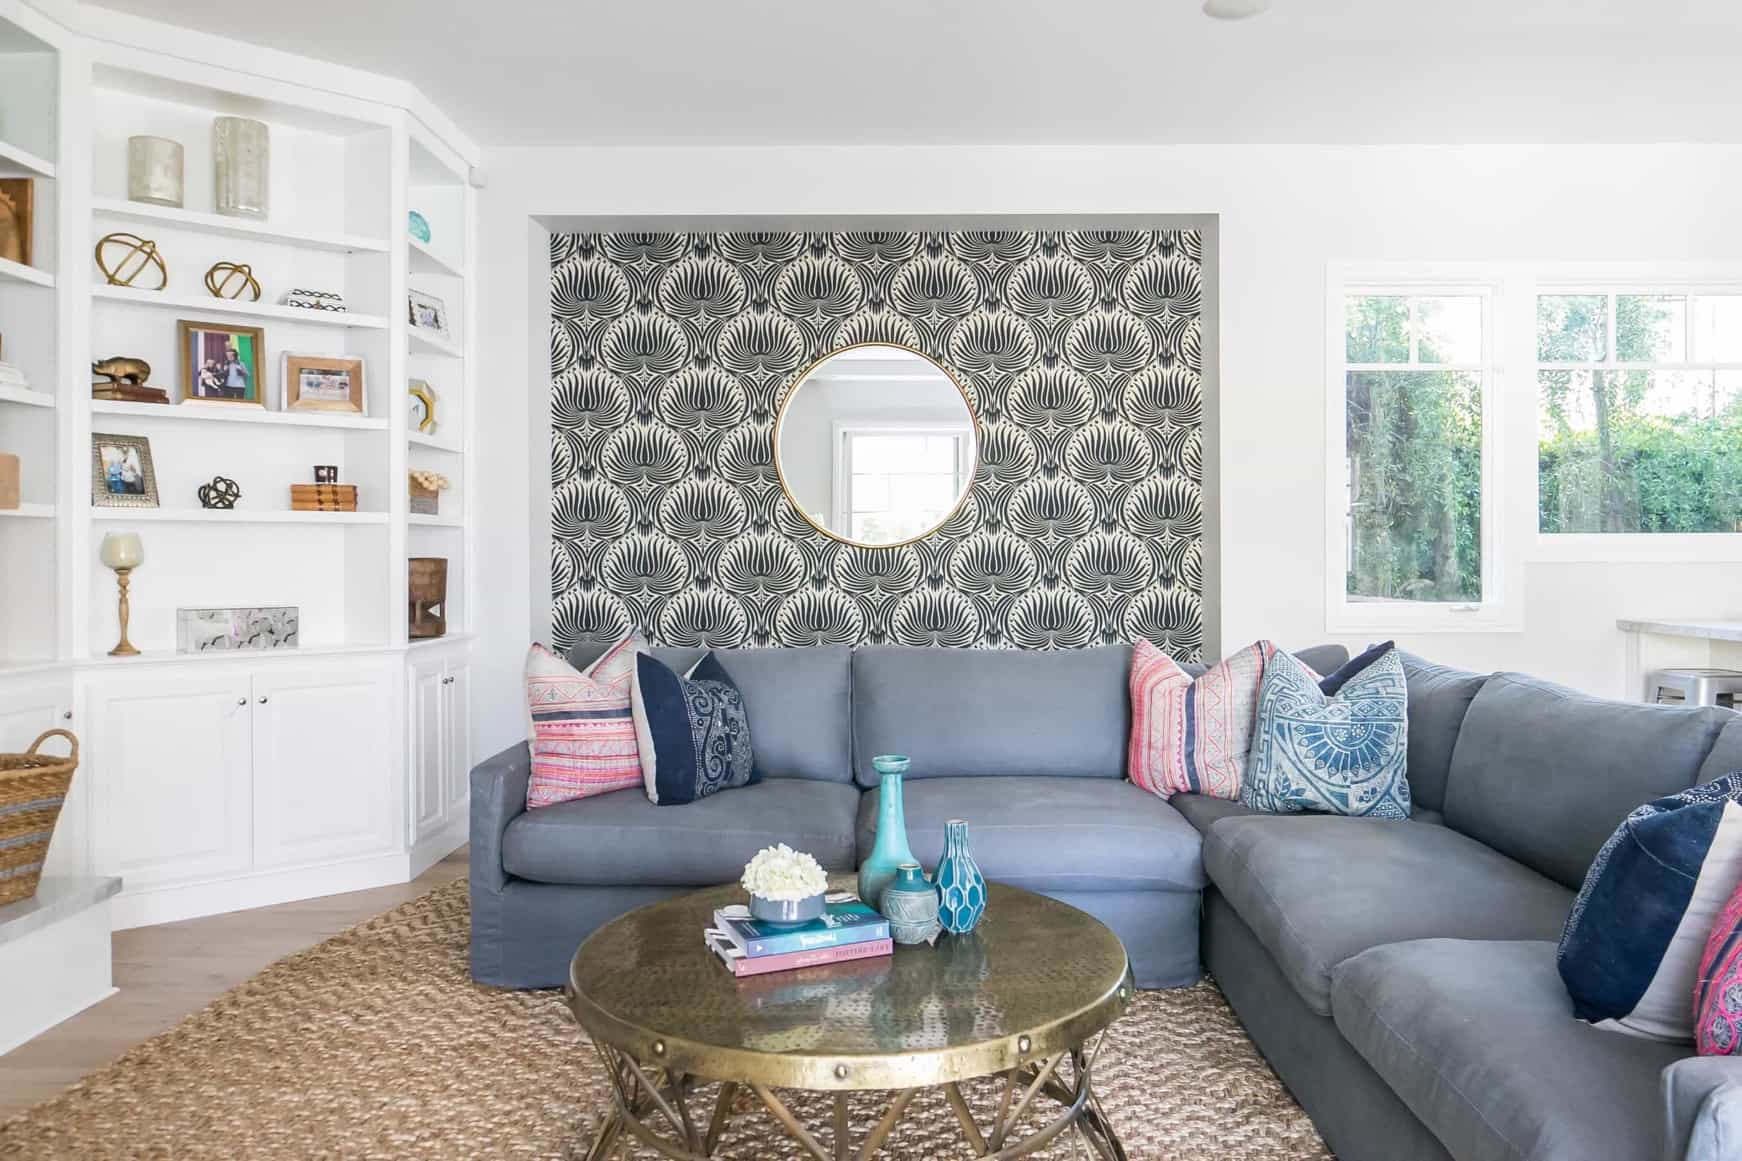 Awesome Featured Image Of Coastal Living Room With Seashell Wallpaper Accent Wall